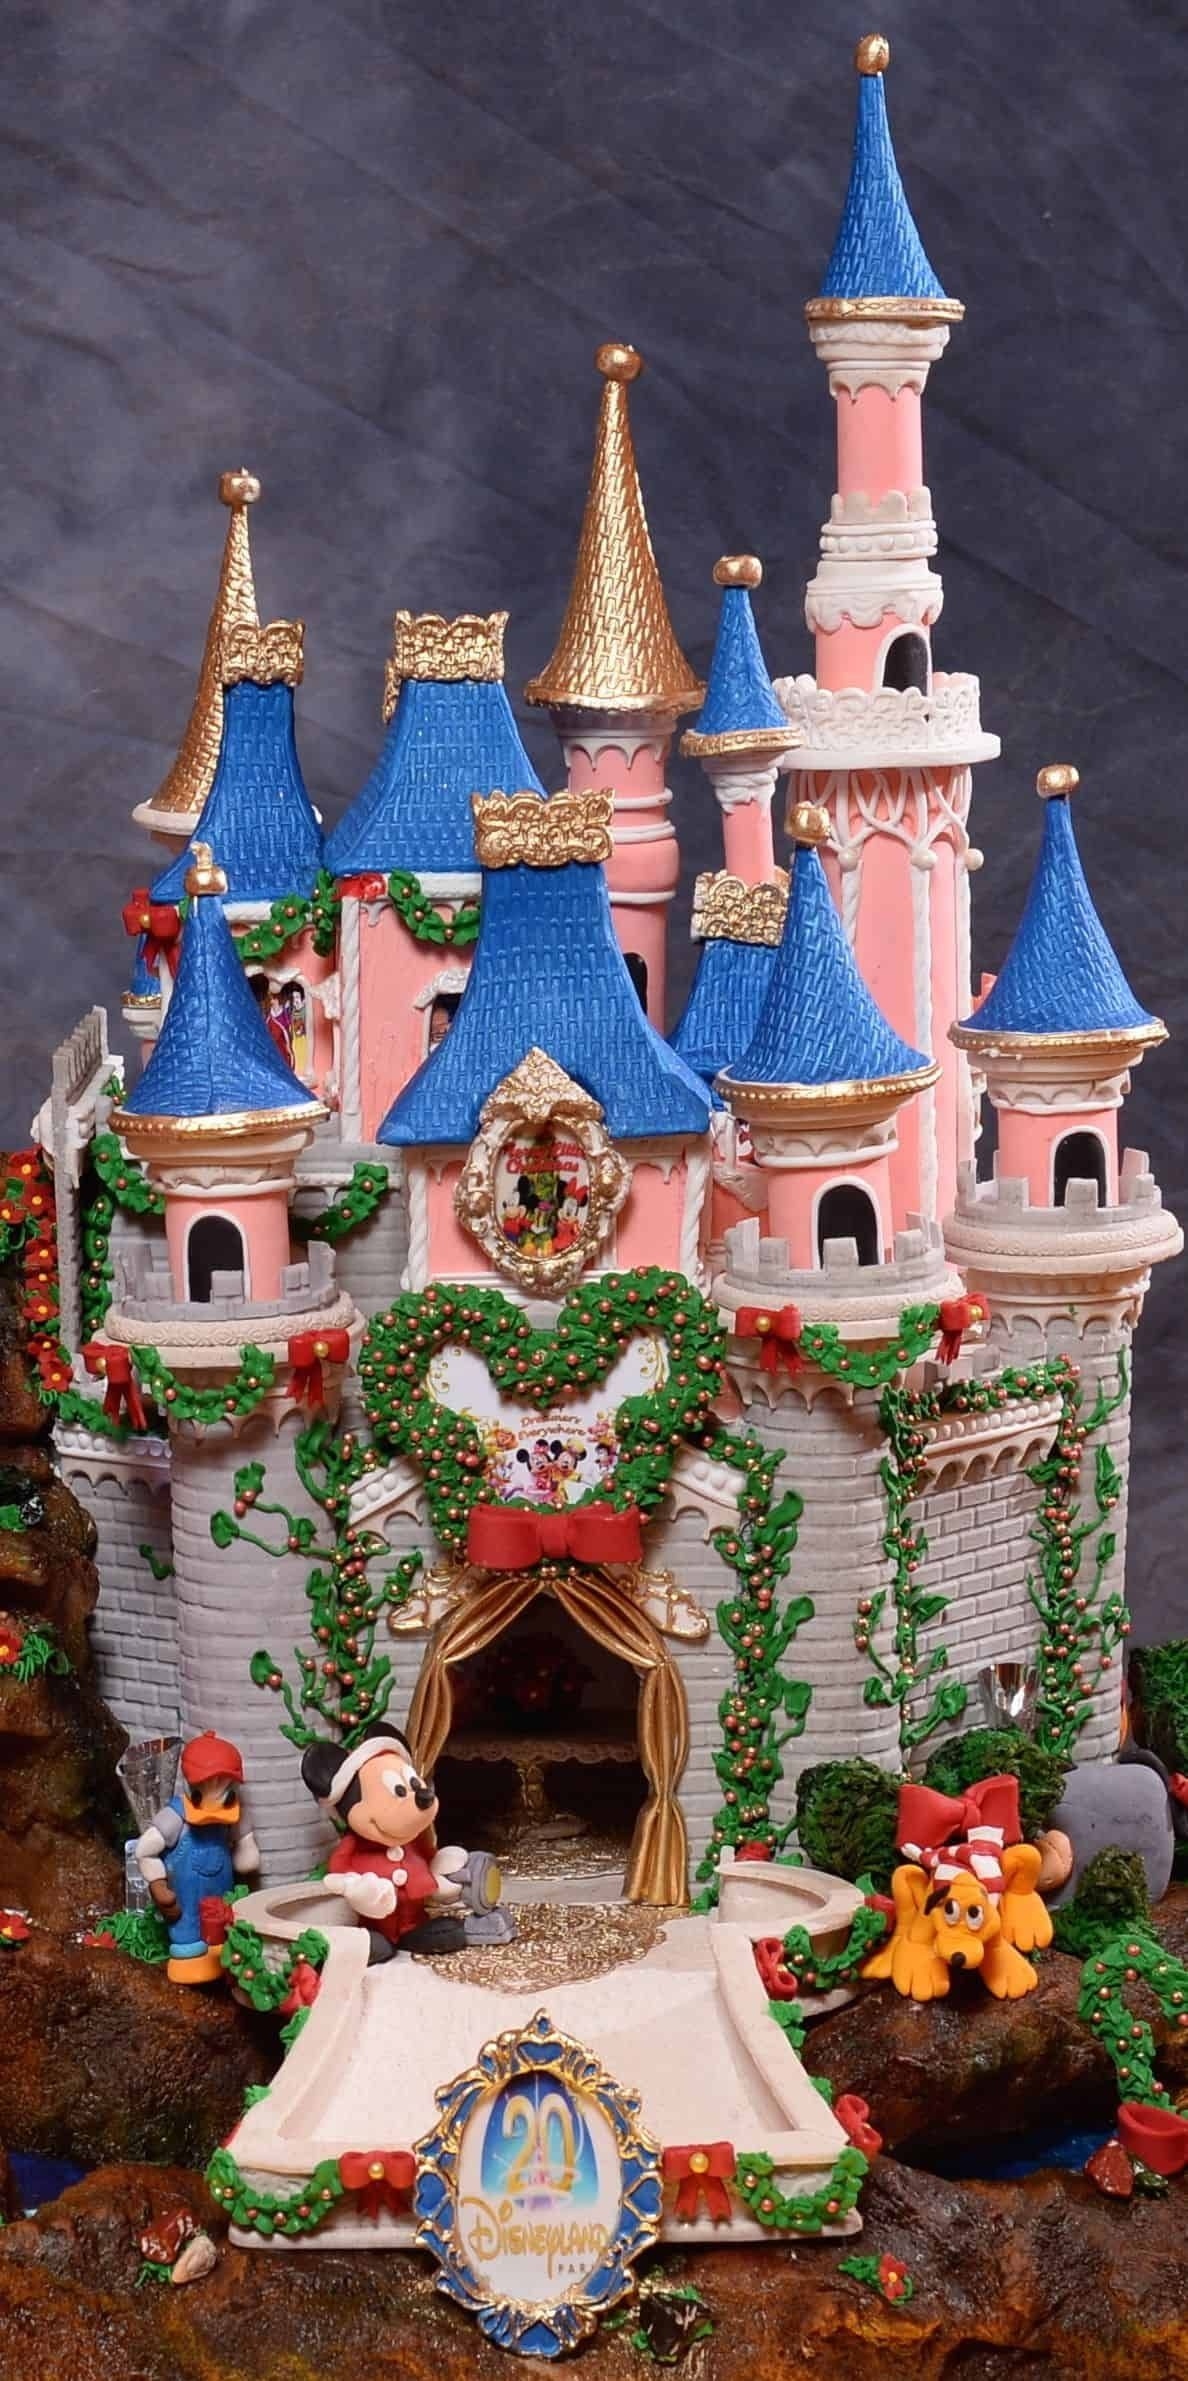 Fantastic Diy Gingerbread House Ideas For Your Décor To Try Asap 44